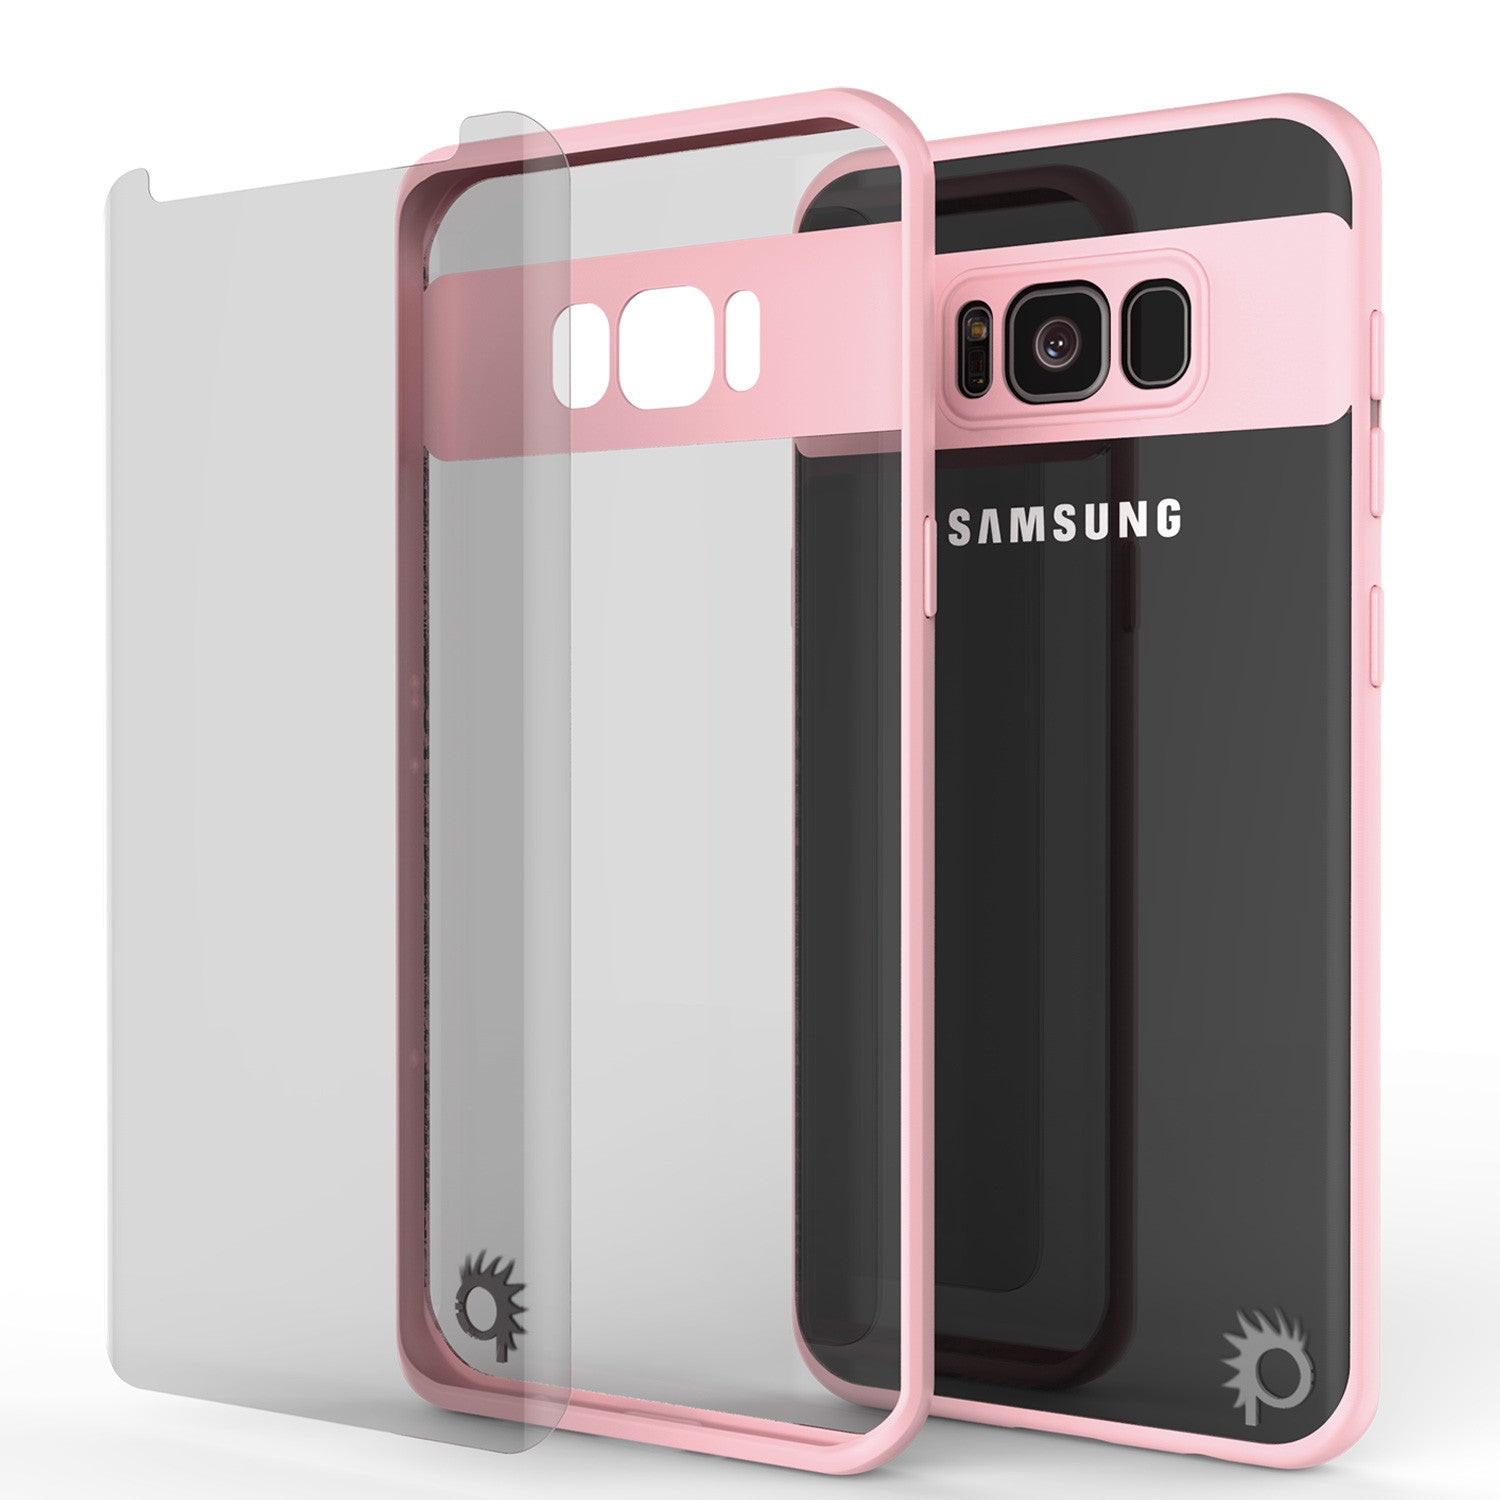 Galaxy S8 Plus Case, Punkcase [MASK Series] [PINK] Full Body Hybrid Dual Layer TPU Cover W/ Protective PUNKSHIELD Screen Protector